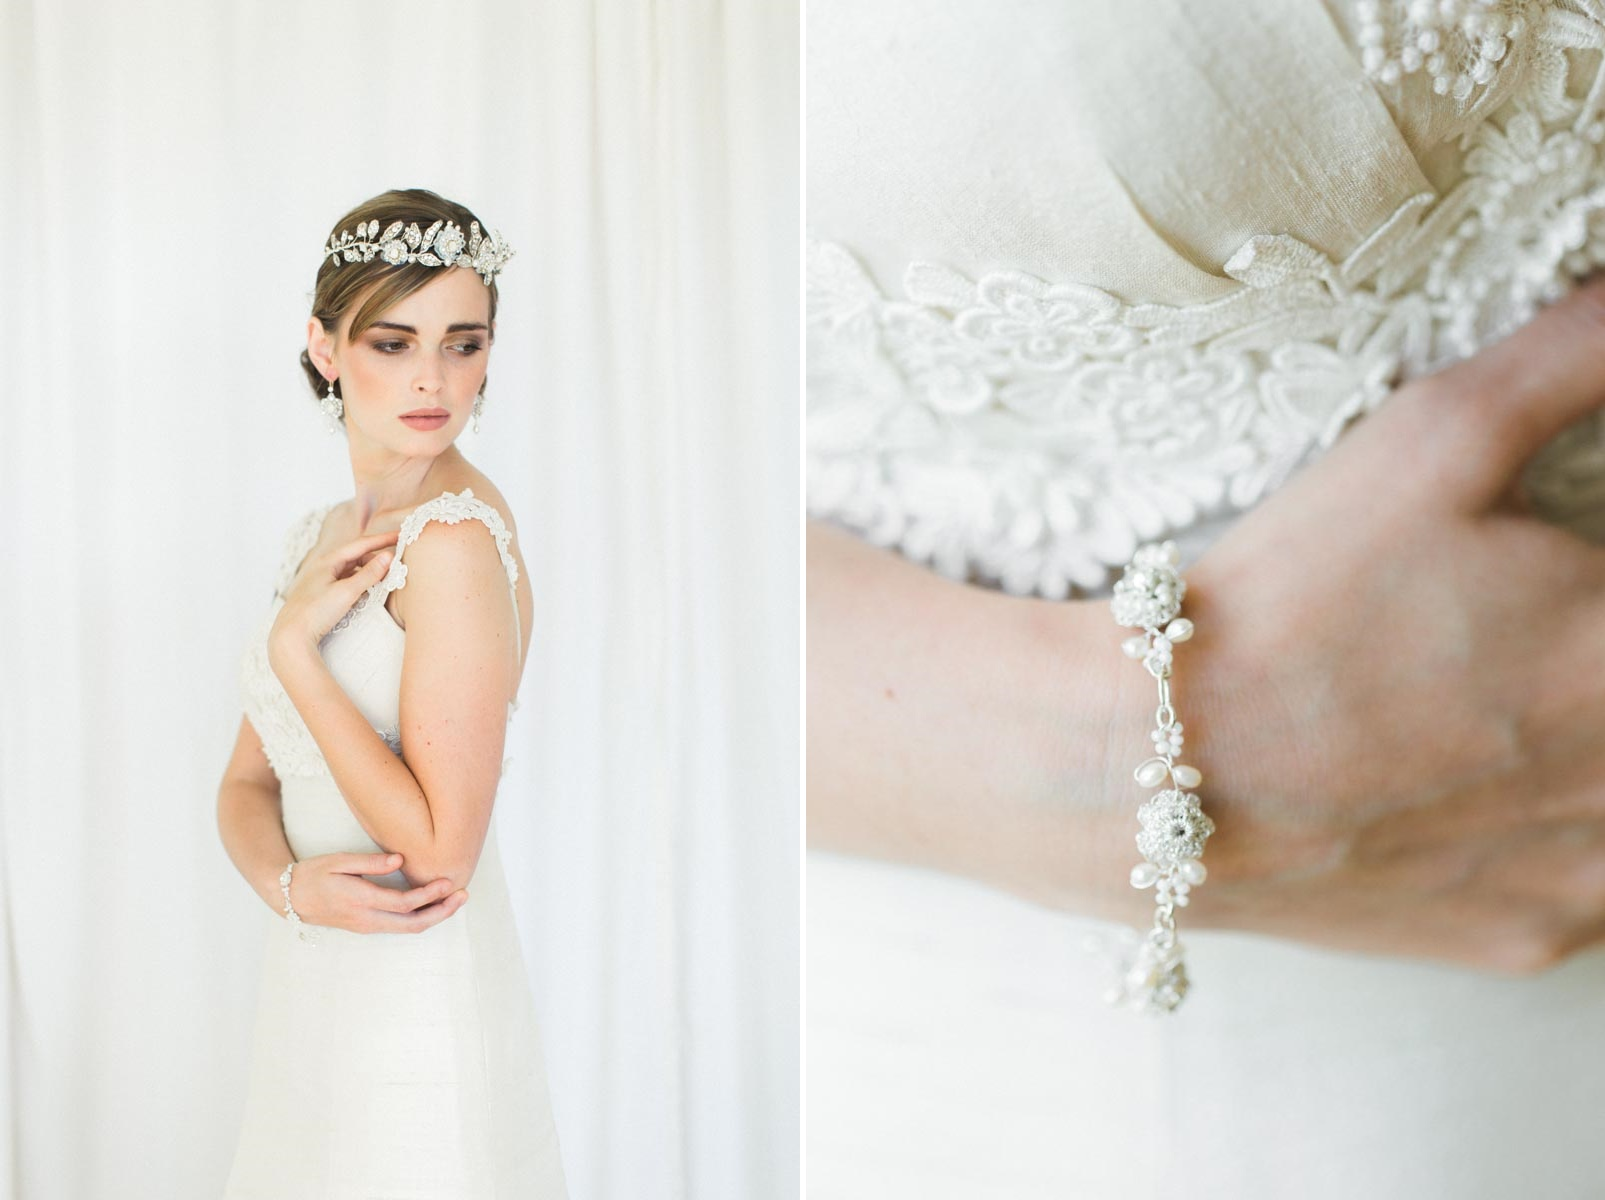 Vintage Inspired Bridal Bracelet from Edera Jewlery